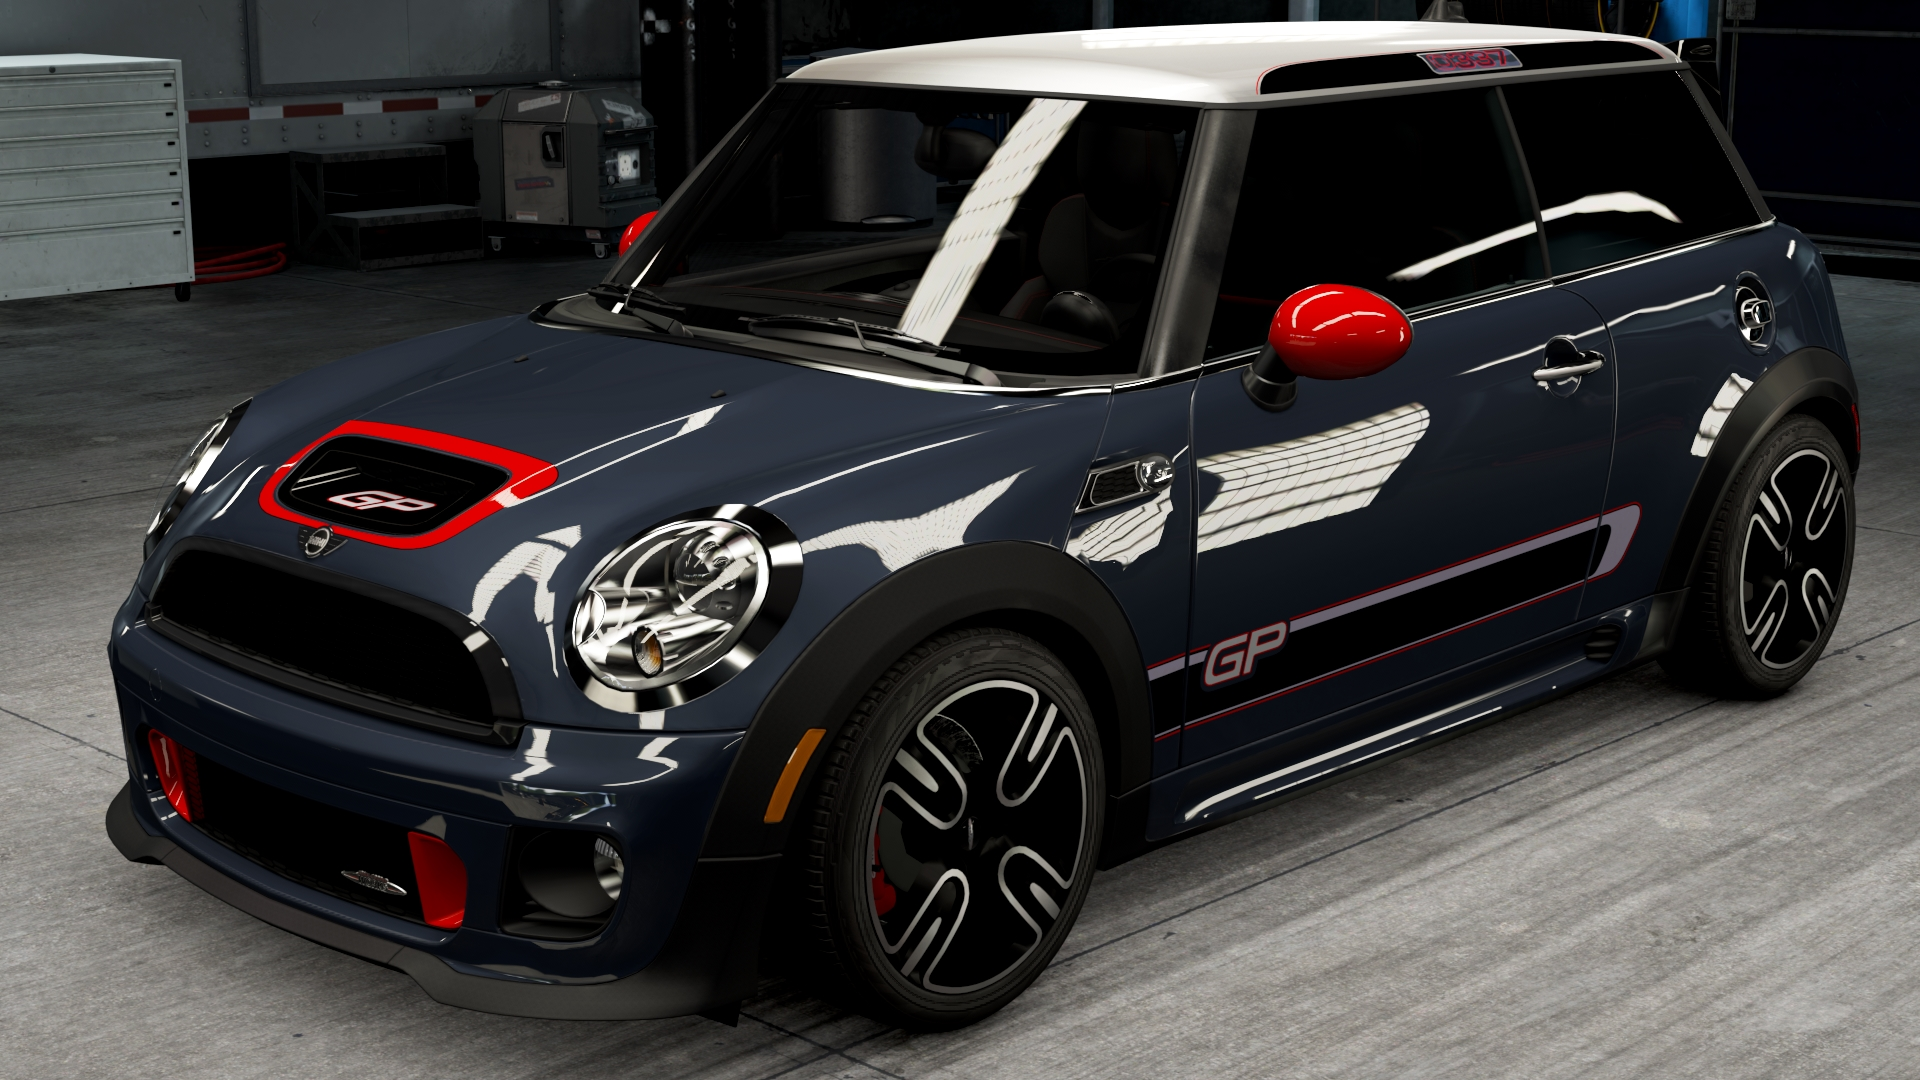 mini john cooper works gp forza motorsport wiki fandom powered by wikia. Black Bedroom Furniture Sets. Home Design Ideas